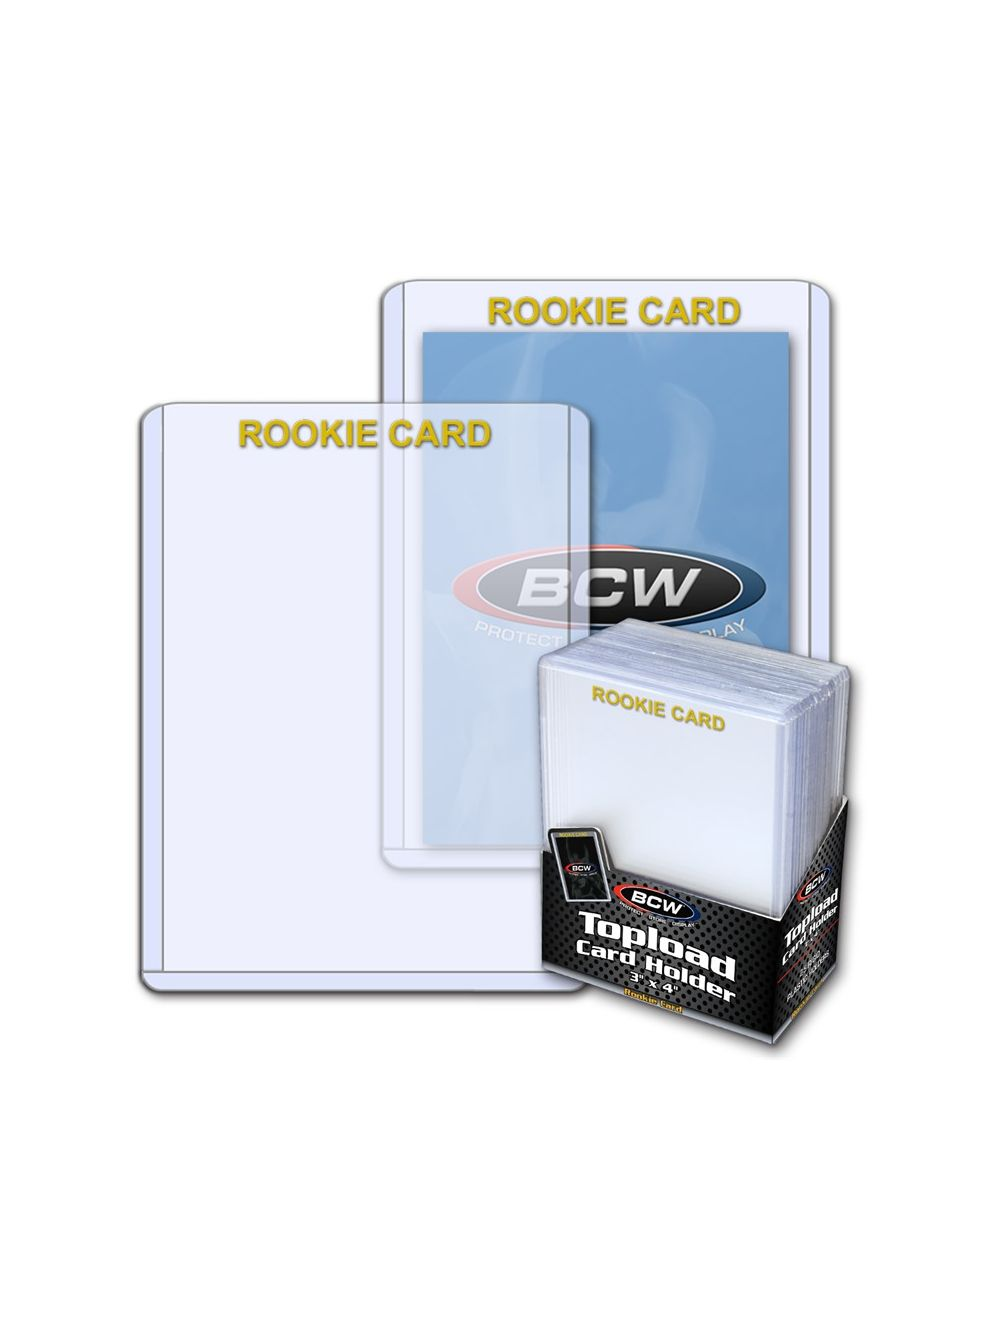 3x4 Topload Card Holder  Rookie Imprinted  Gold